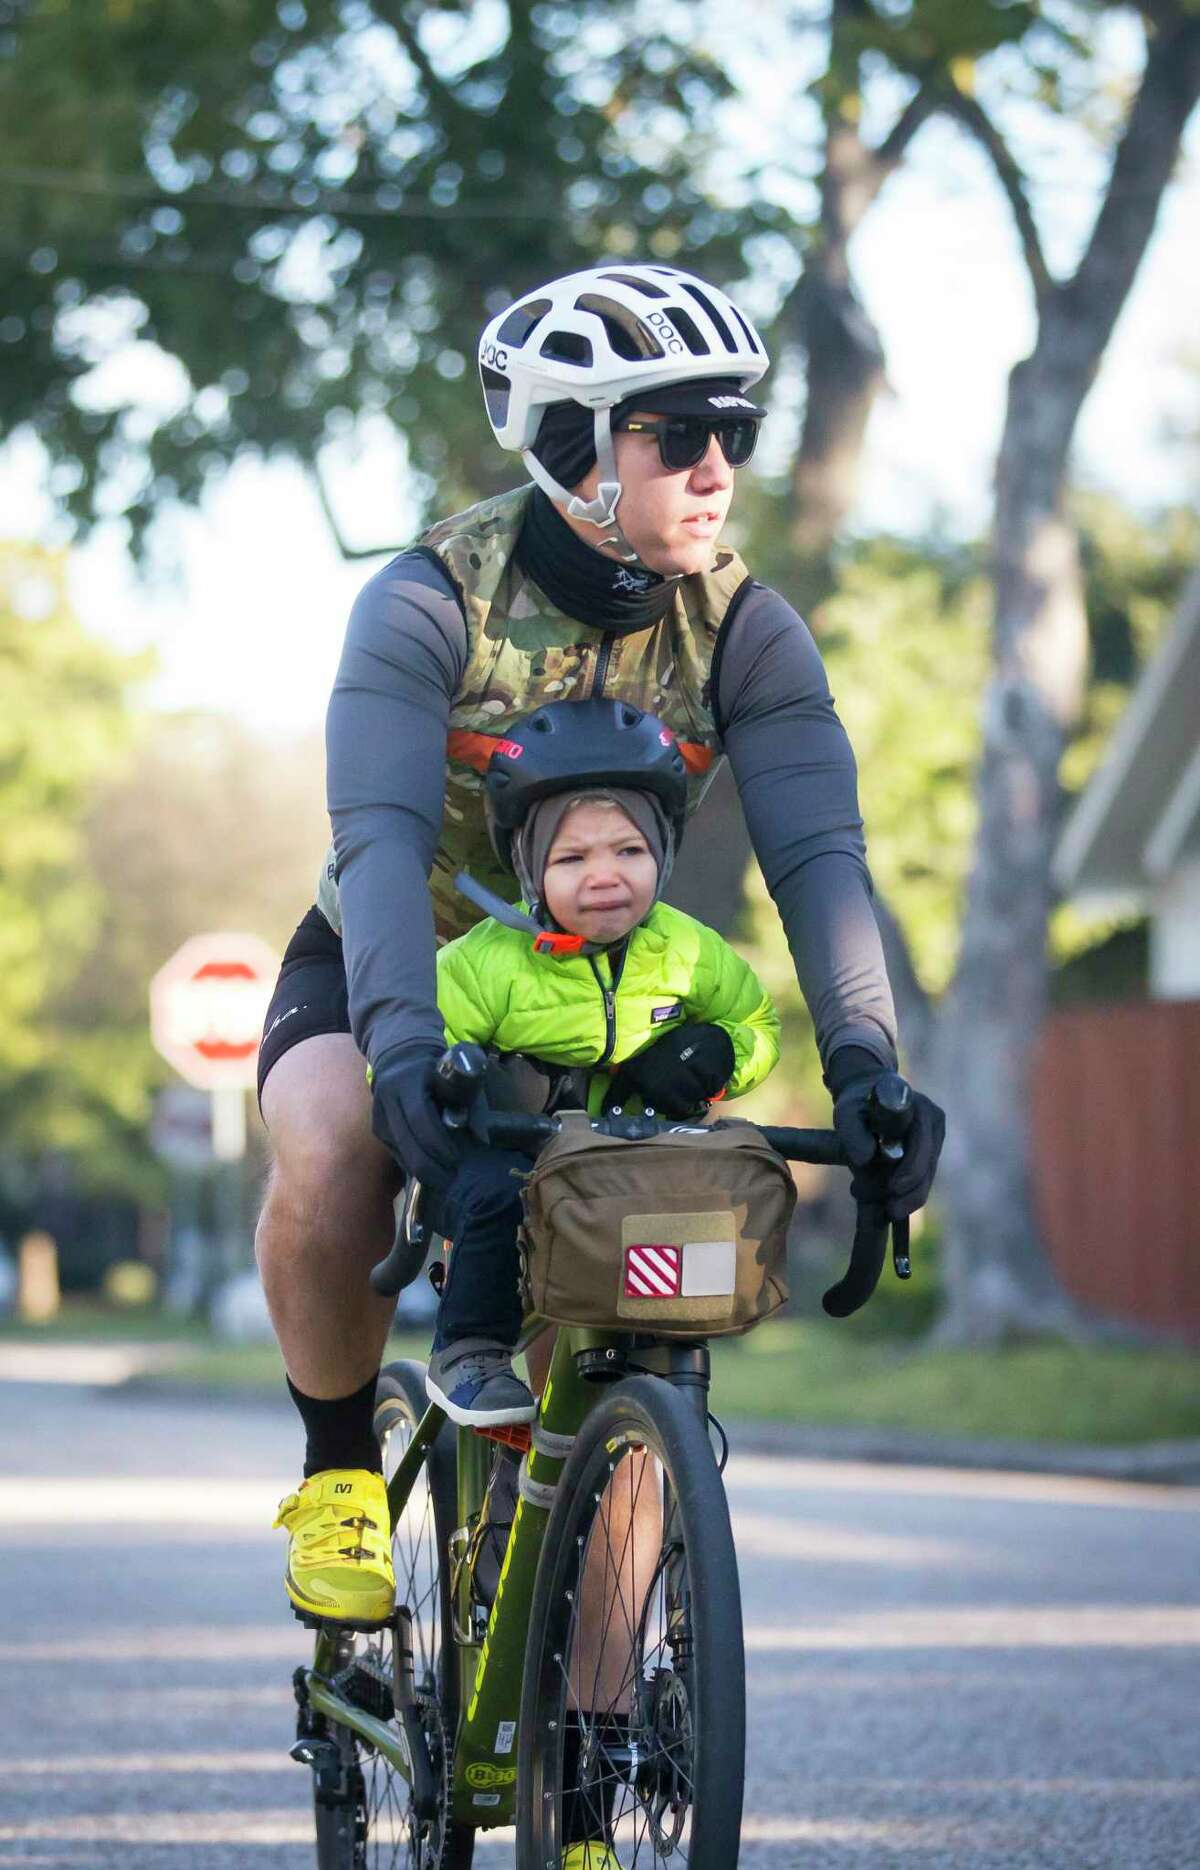 James Eilers rides with his 2.5-year-old son, Burton, during a morning group bike ride on Nov. 16, 2019, in the Heights. The family ride was organized by former pro cyclist Phil Gaimon and hosted by the Bicycle Speed Shop and Gaimon's sponsor, Integrated Informatics Inc.